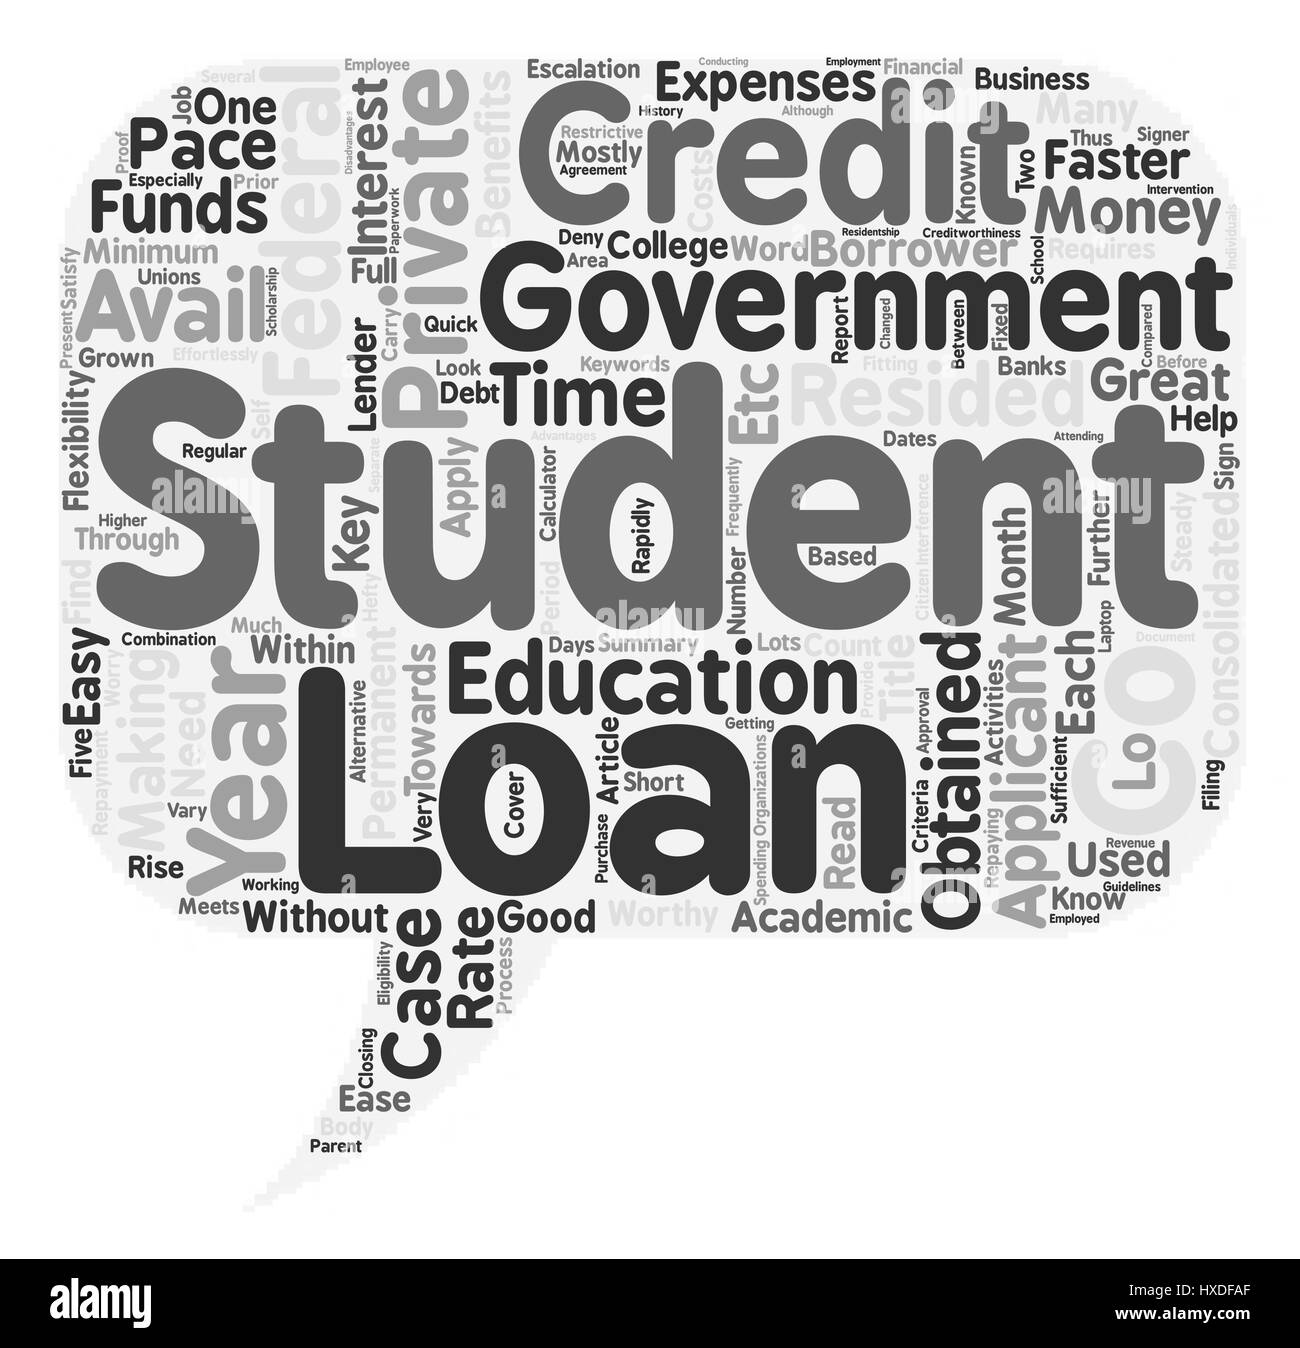 Private Student Loans >> Key Benefits Of Private Student Loans Text Background